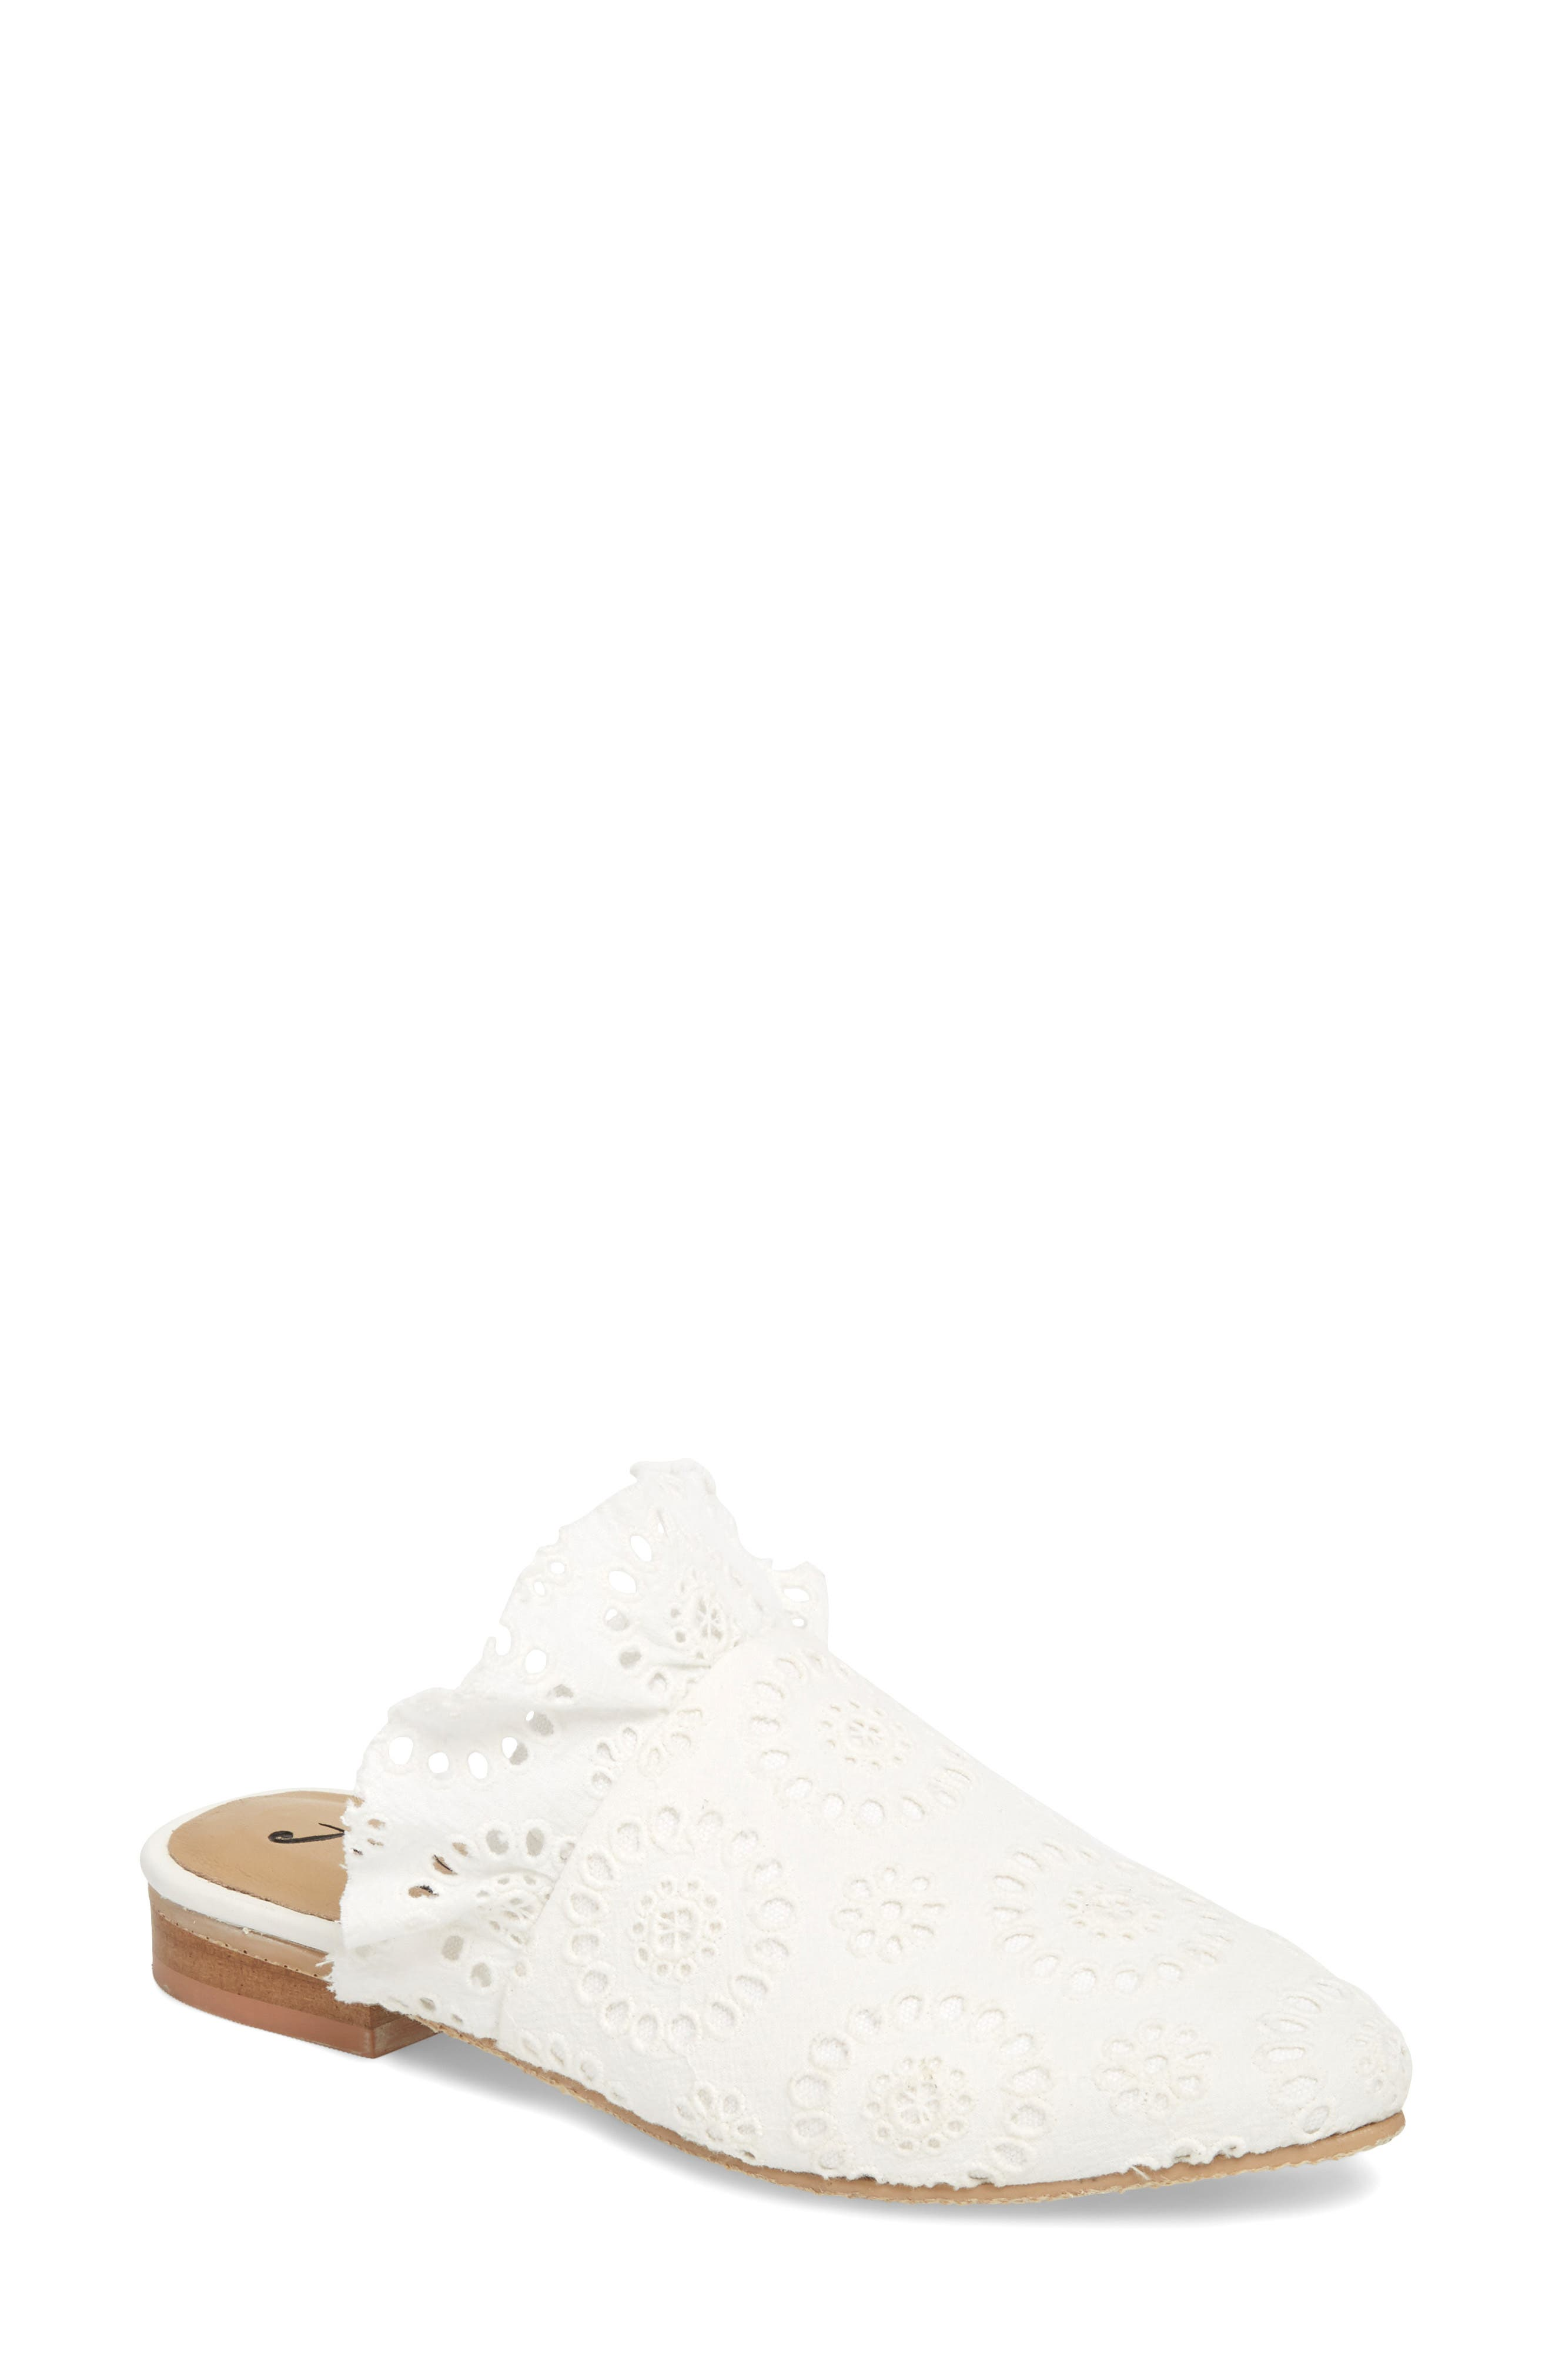 Eyelet Sienna Mule,                         Main,                         color, White